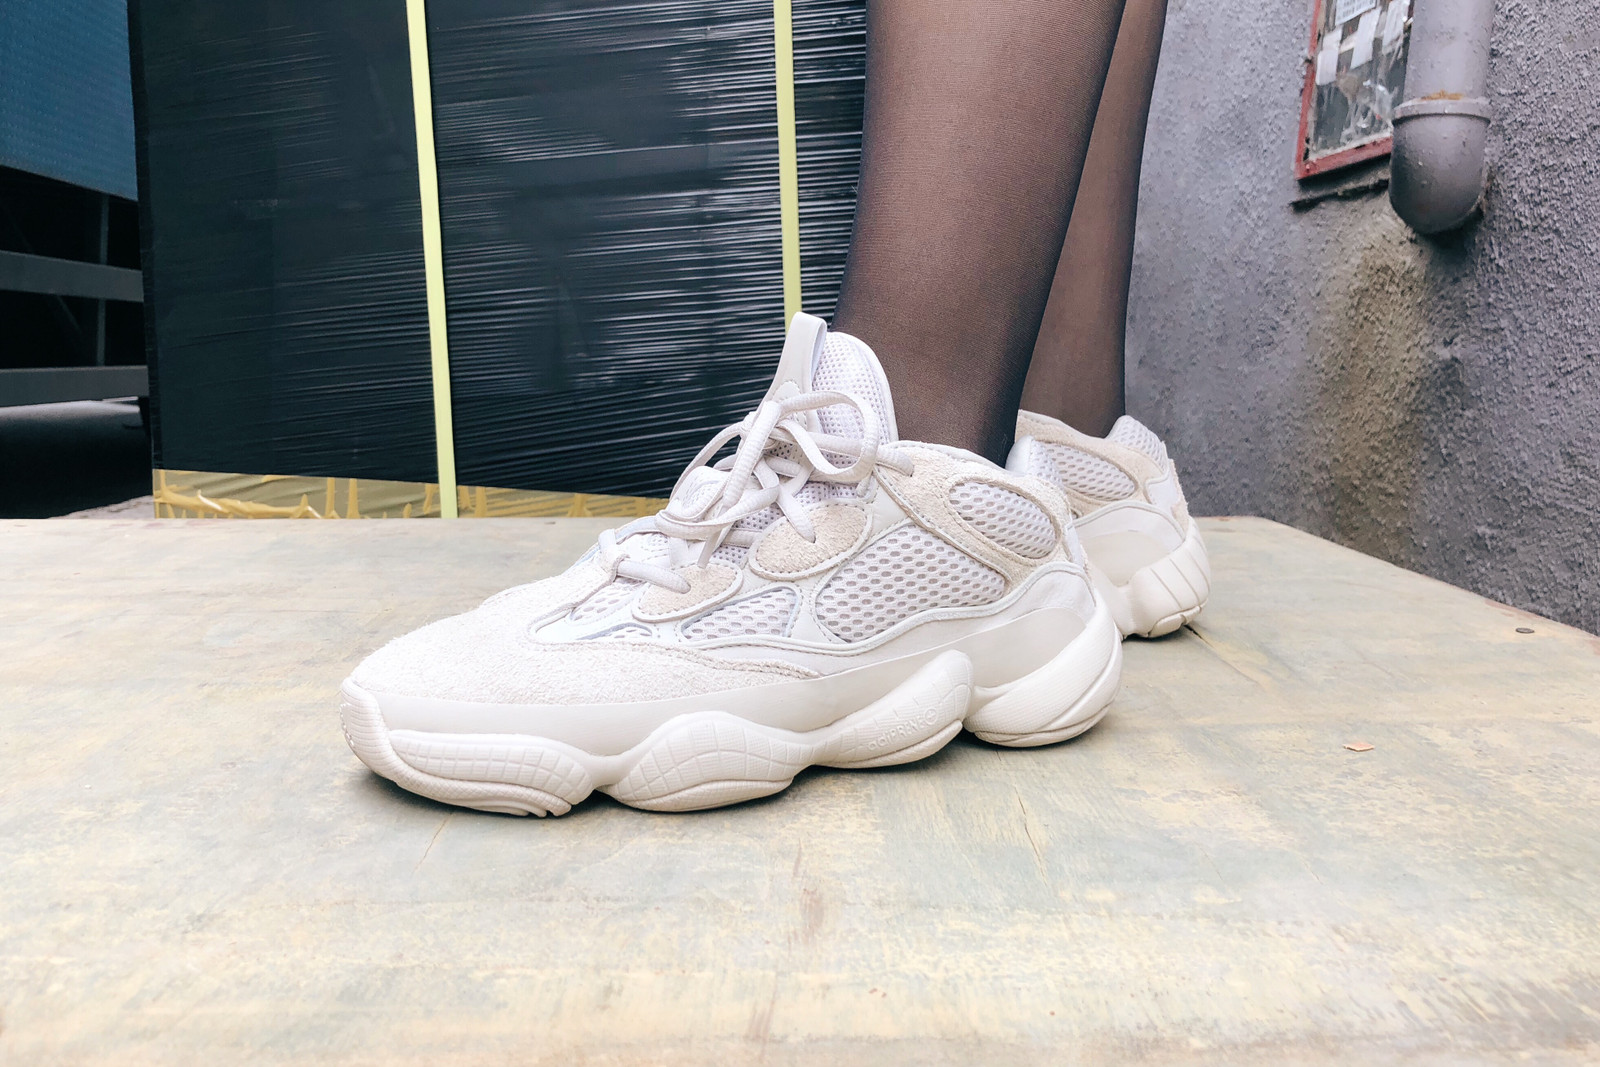 f7d937c1173 hypebae kicks review adidas originals yeezy desert rat 500 blush on foot